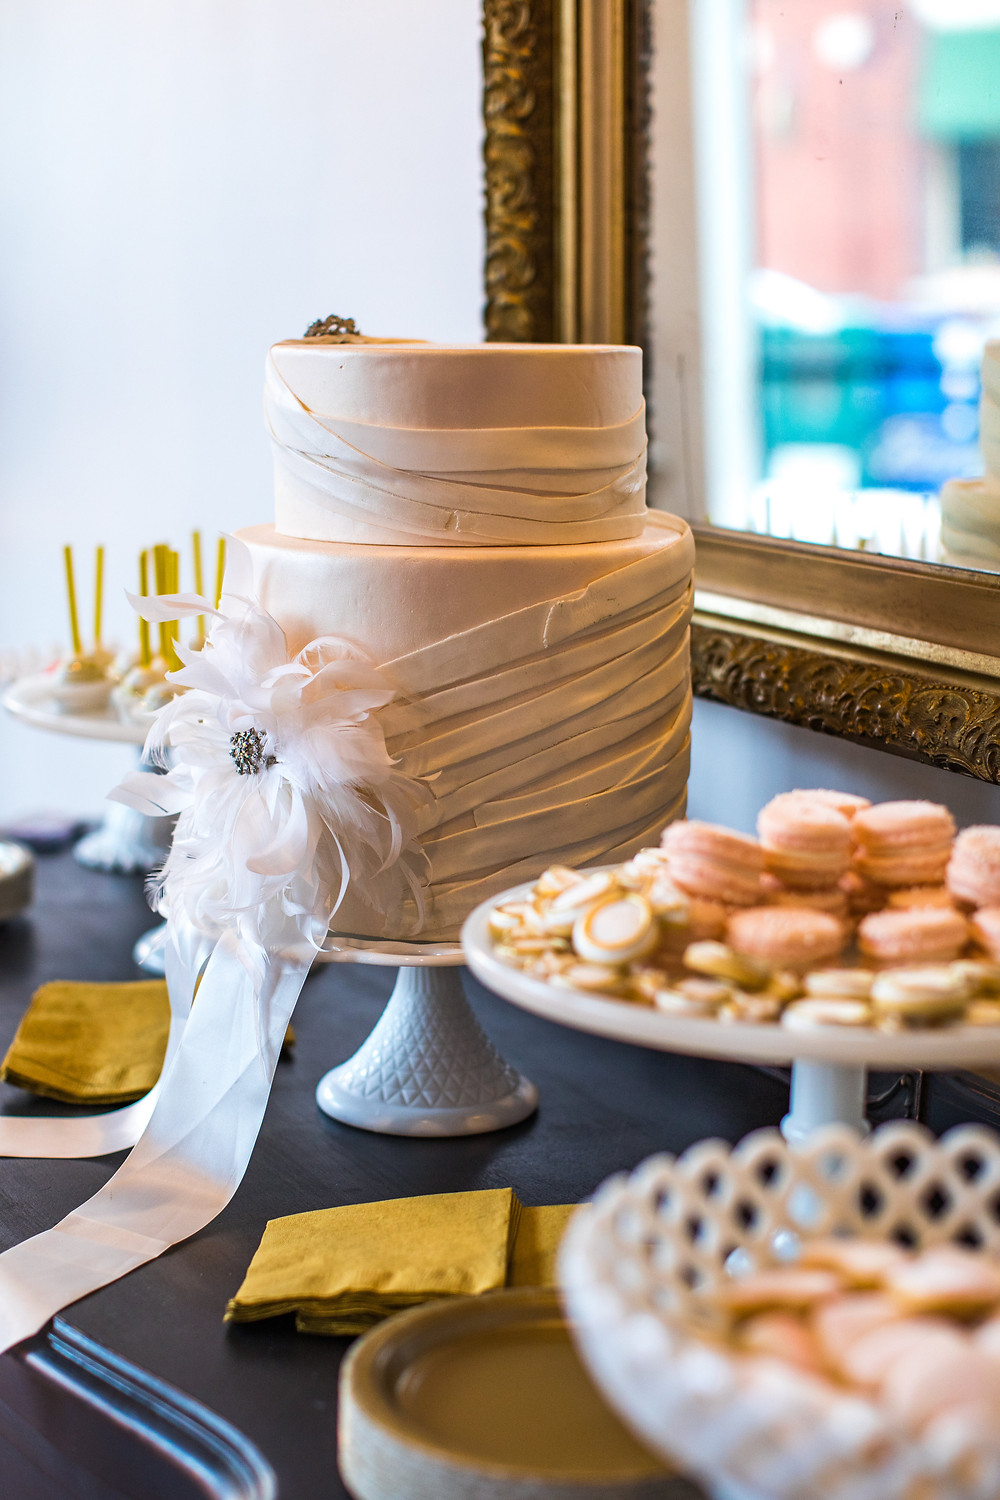 Wedding cake displayed on white milk glass cake plate, amongst other sweets on dessert table